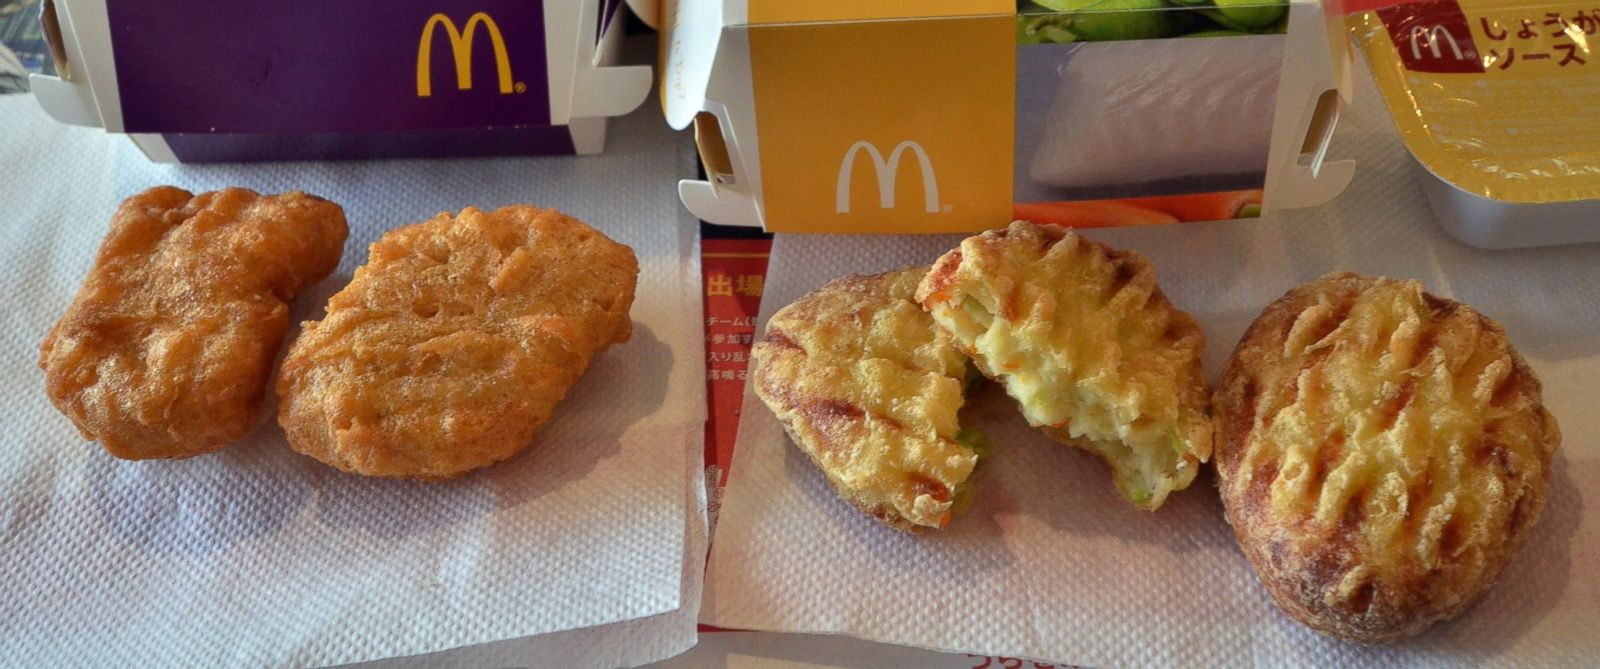 PHOTO: Tofu Shinjo Nuggets, right, and Chicken McNuggets, left, are displayed at a McDonalds restaurant in Tokyo on July 30, 2014.